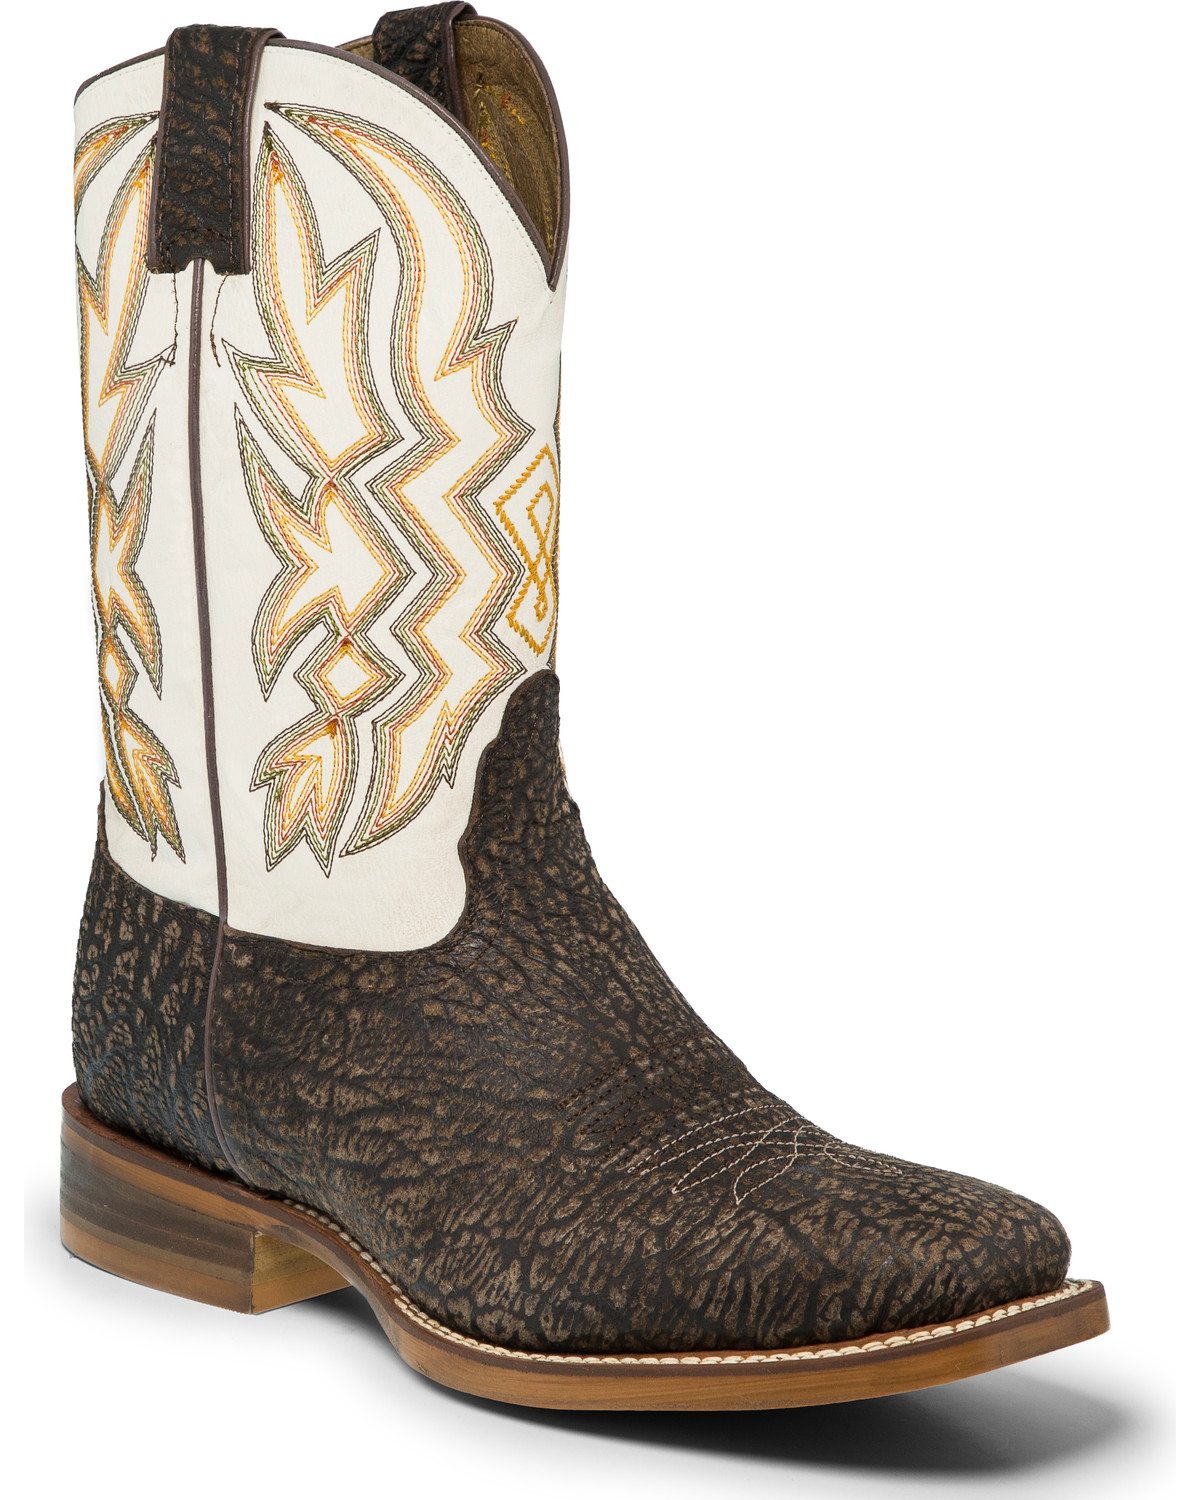 nocona buddhist single men Men's tan ryman boot by nocona boots style number: md2731 stir things up in the stirrup with the ryman 11-inch tall men's cowboy boot its distressed and weathered exterior gives the light brown leather a vintage feel and is accented by a teal and cream stitching and smooth brown leather panel on the heel.